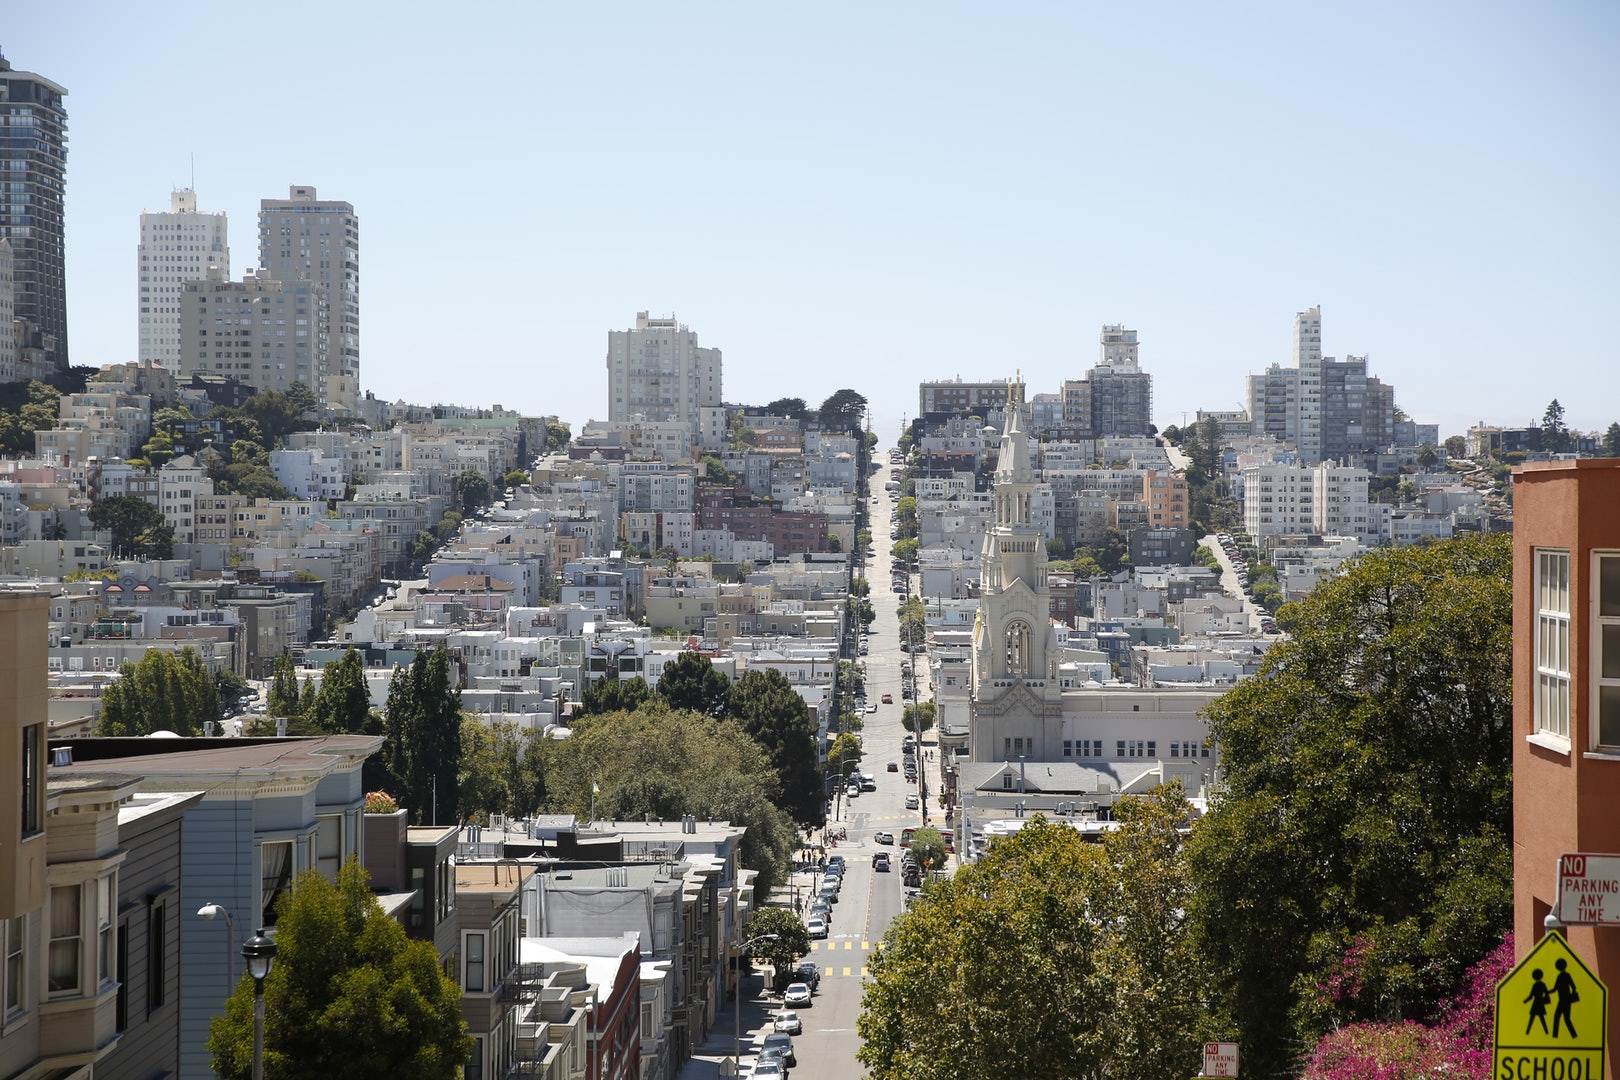 view from the Telegraph hill in San Francisco